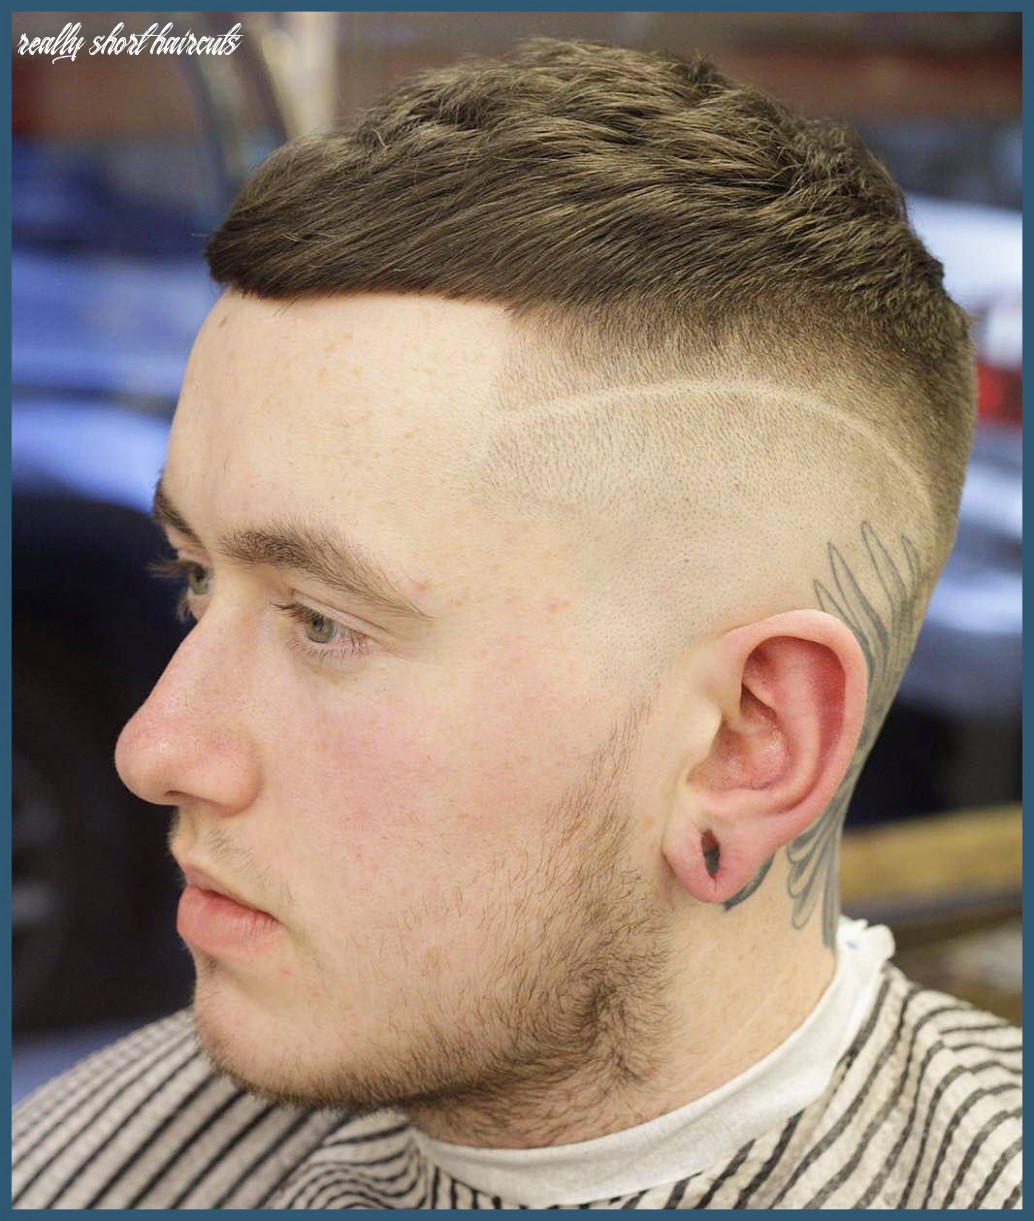 Hairstyles for men with really short hair 11 11 very short